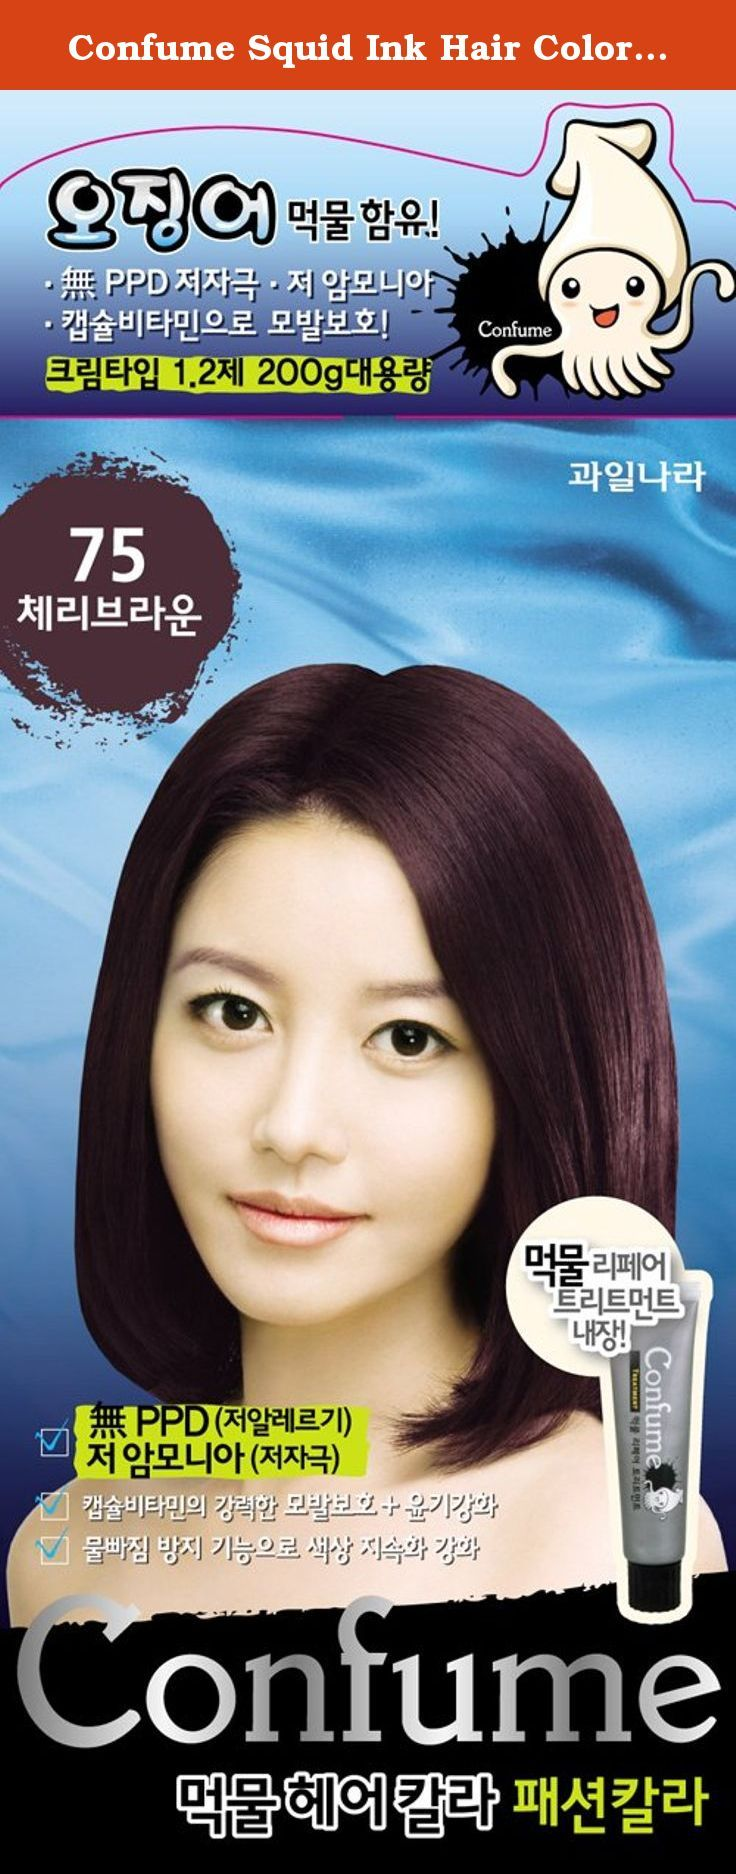 Confume Squid Ink Hair Color 75 - Cherry Brown (No Ammonia). *Healthy and glossy hair with natural squid ink:The product contains a molecule structure very close to the melanin (Eumelanin) found in hair, and so it causes less damage to the hair or stimulation to the scalp compared to chemical hair dyes. With the excellent 'Color Lock System' this effective dye offers clear color to gray hair after operation. Also, mucopolysacharide and taurine give softness and gloss to the hair. **Low...